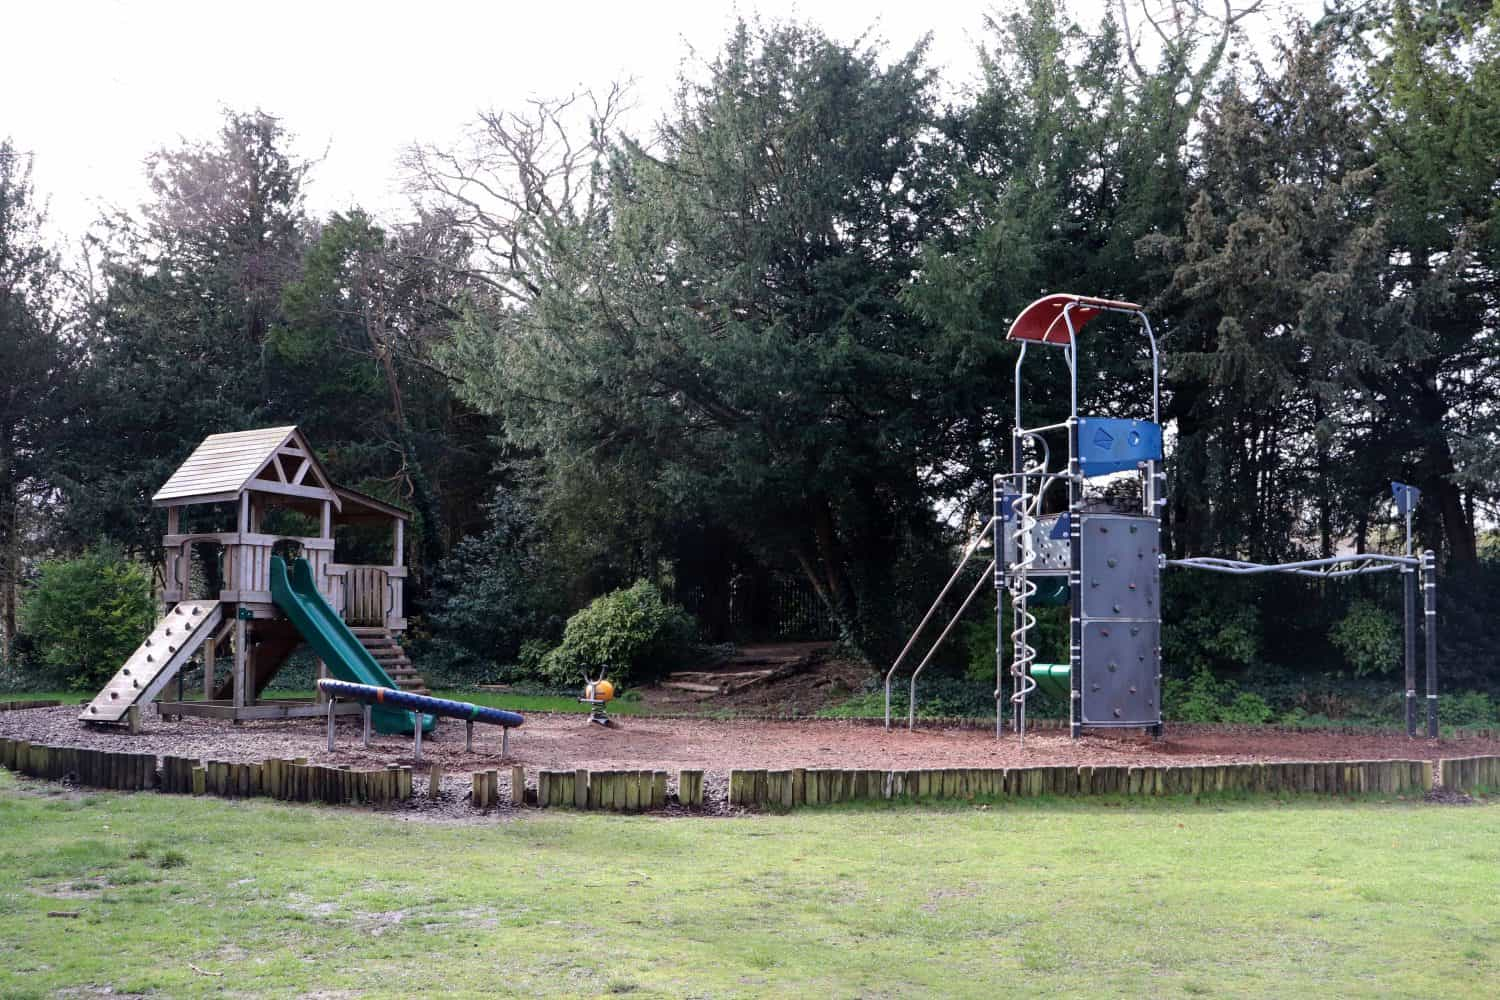 The play area at Bletchley Park